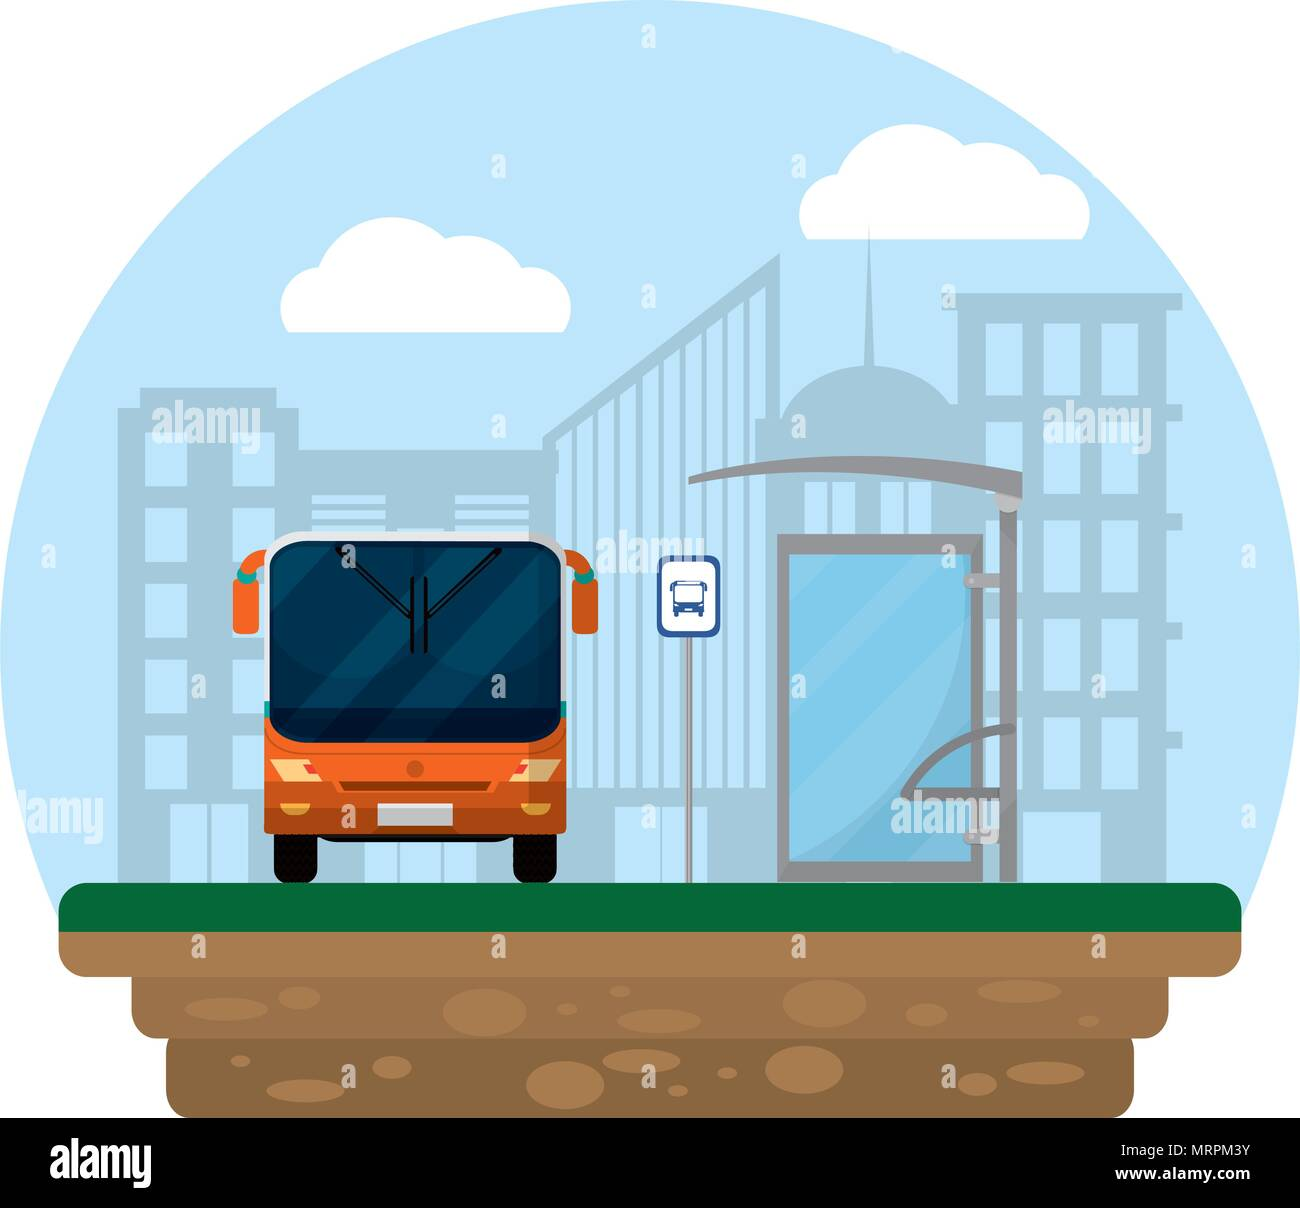 front bus transport and city passenger - Stock Image